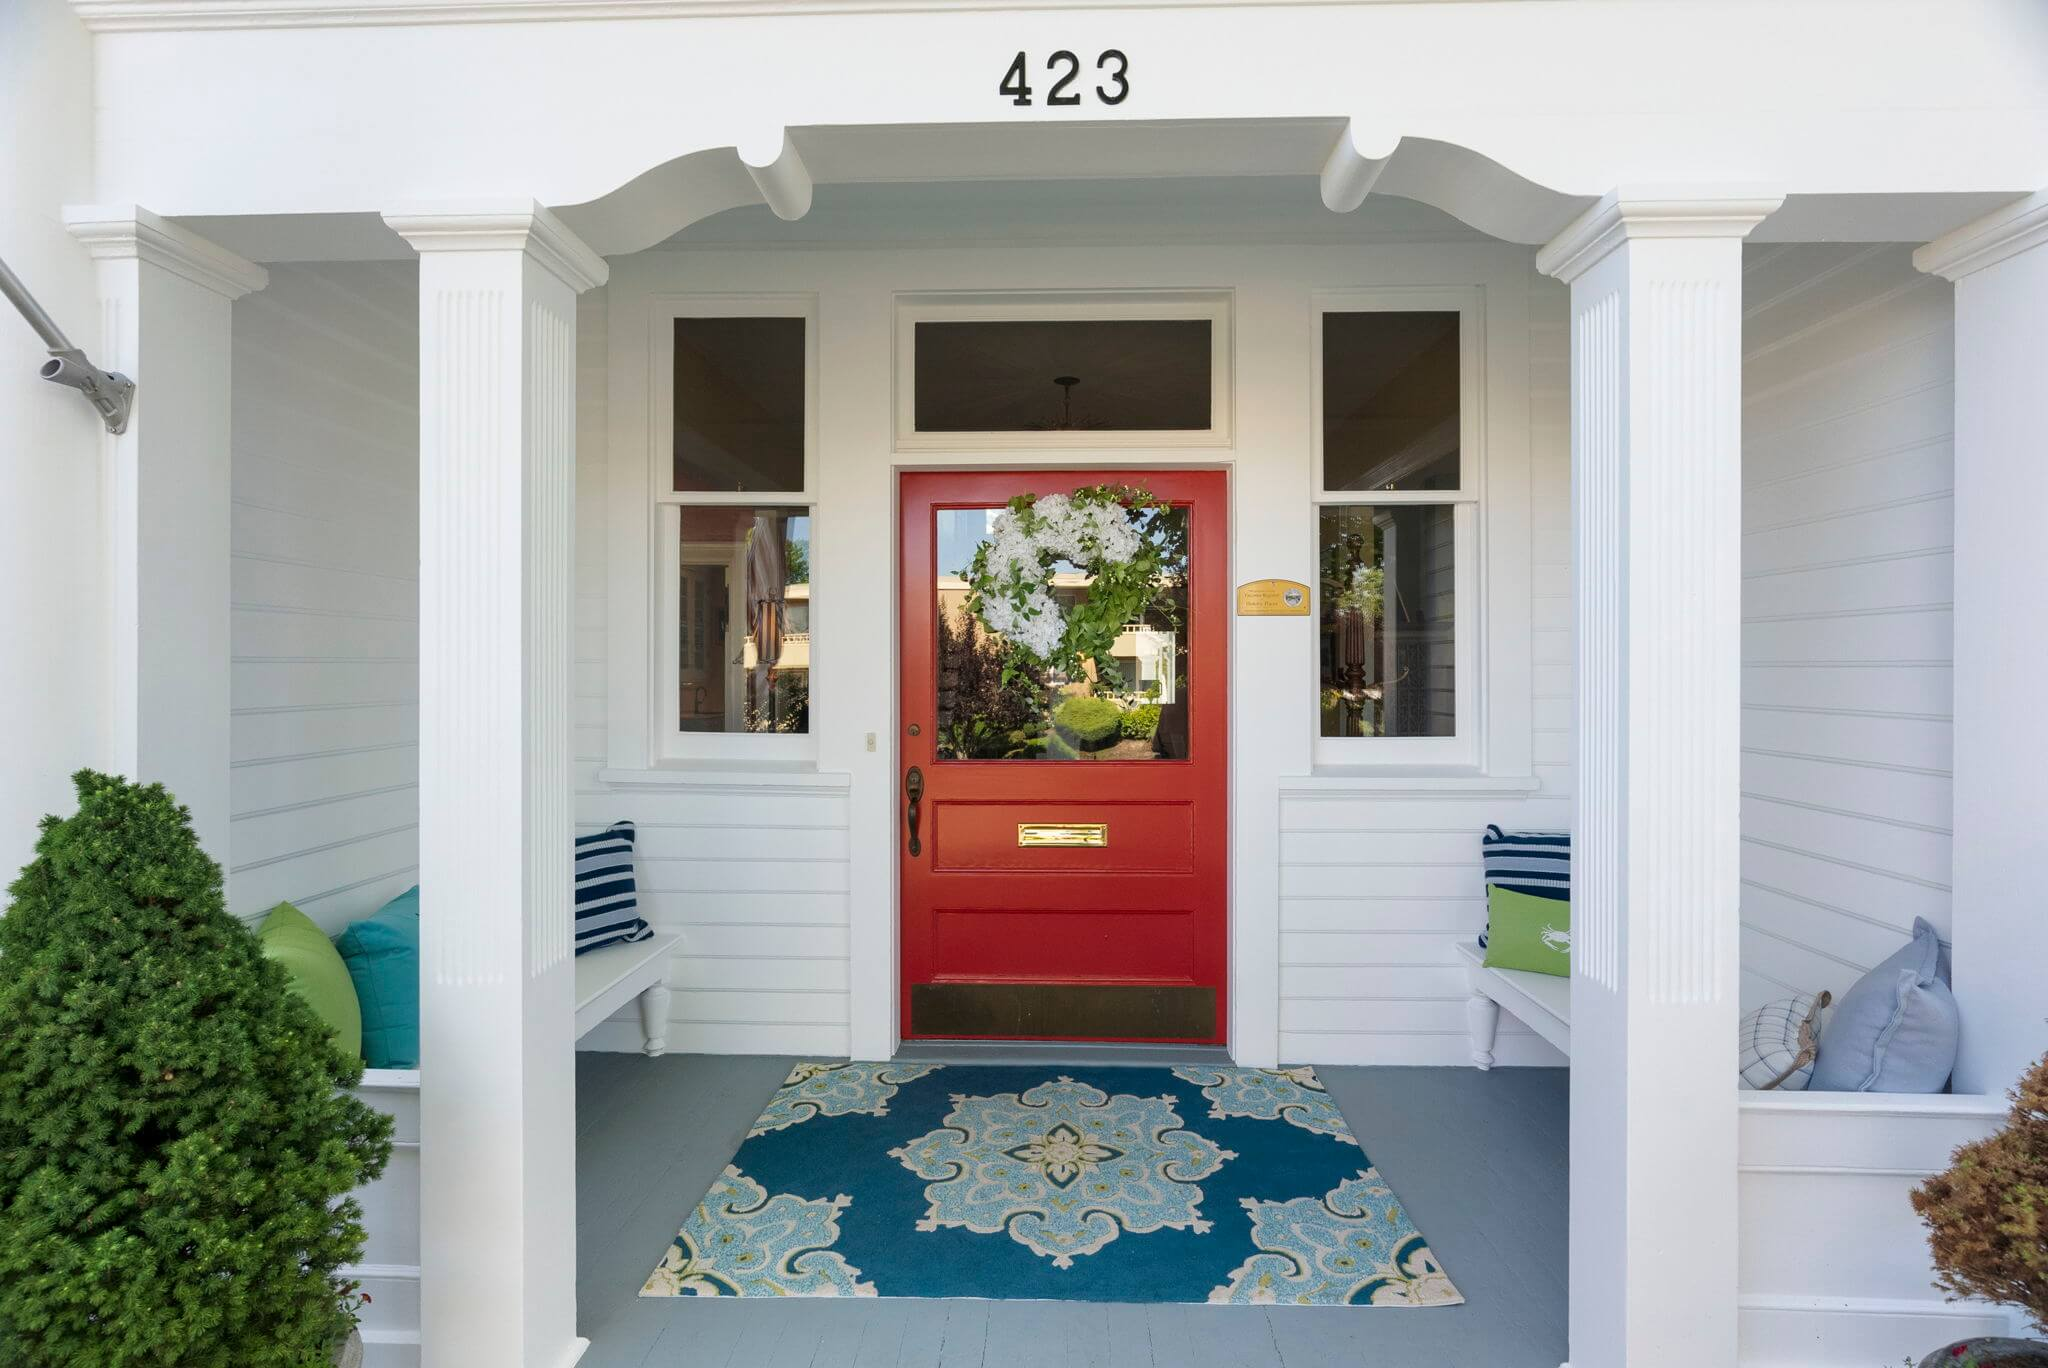 Covered front entry with built-in benches flanking the doorway